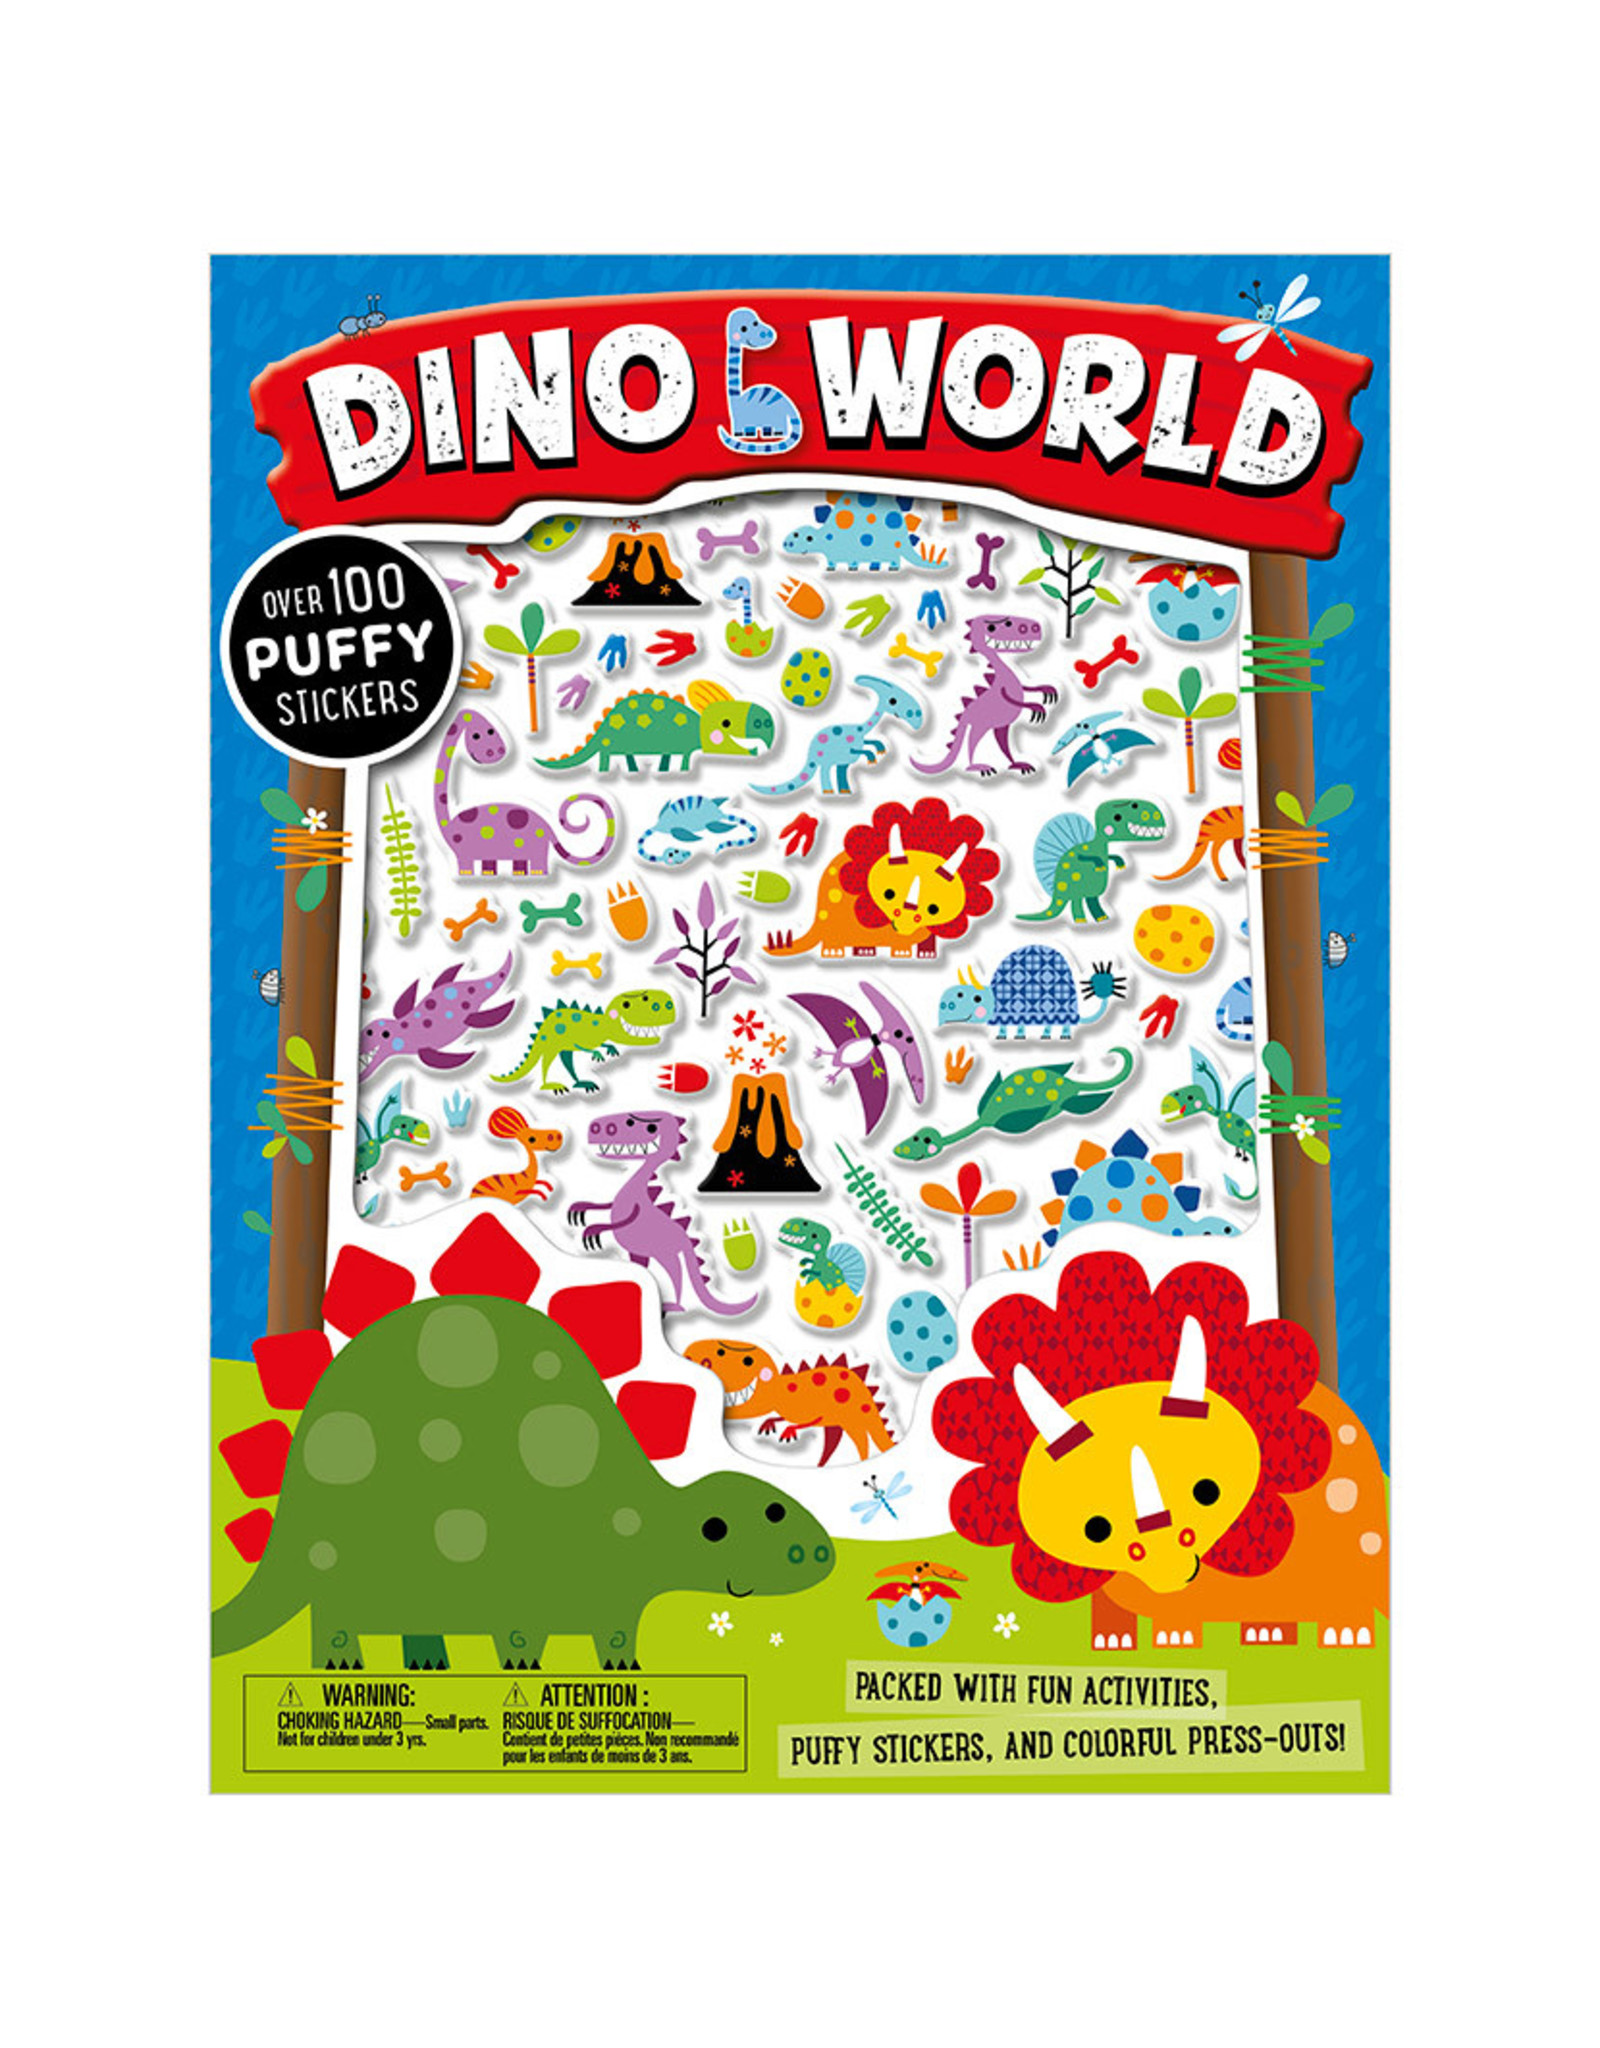 Dino World with Puffy Stickers